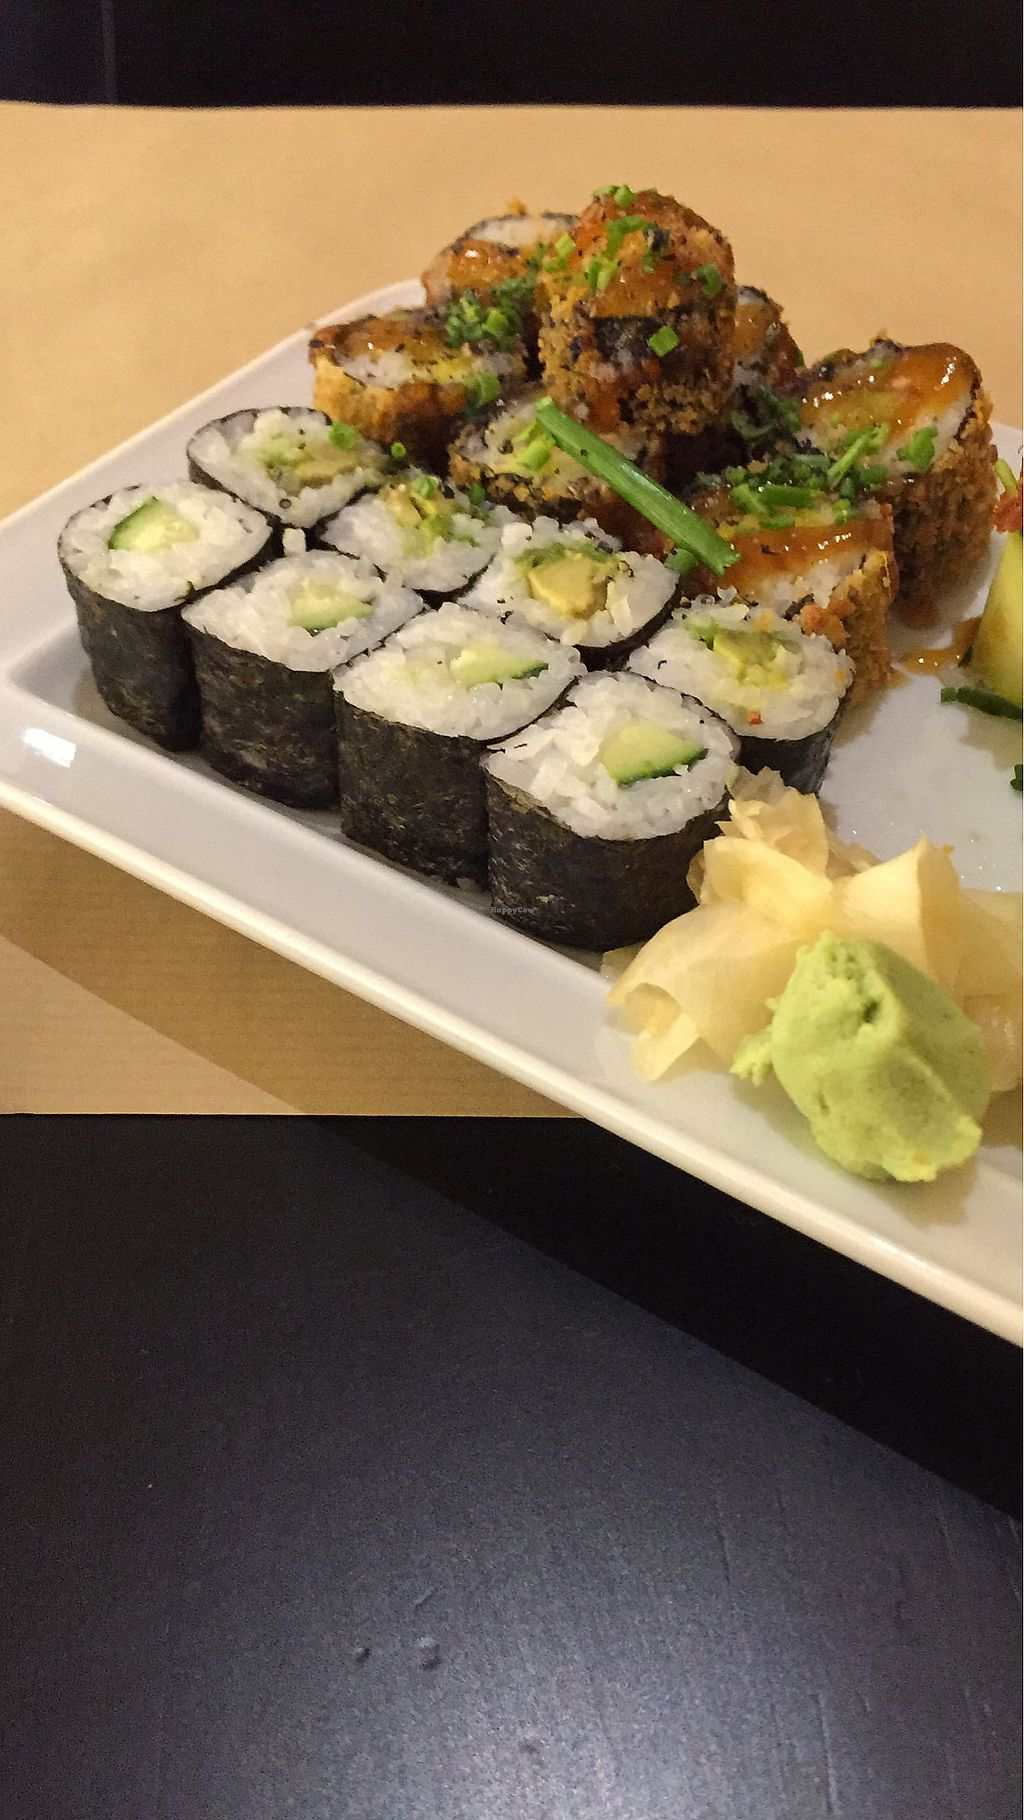 """Photo of Teppan  by <a href=""""/members/profile/AdrianaMartins"""">AdrianaMartins</a> <br/>Sushi  <br/> February 21, 2018  - <a href='/contact/abuse/image/60098/362162'>Report</a>"""